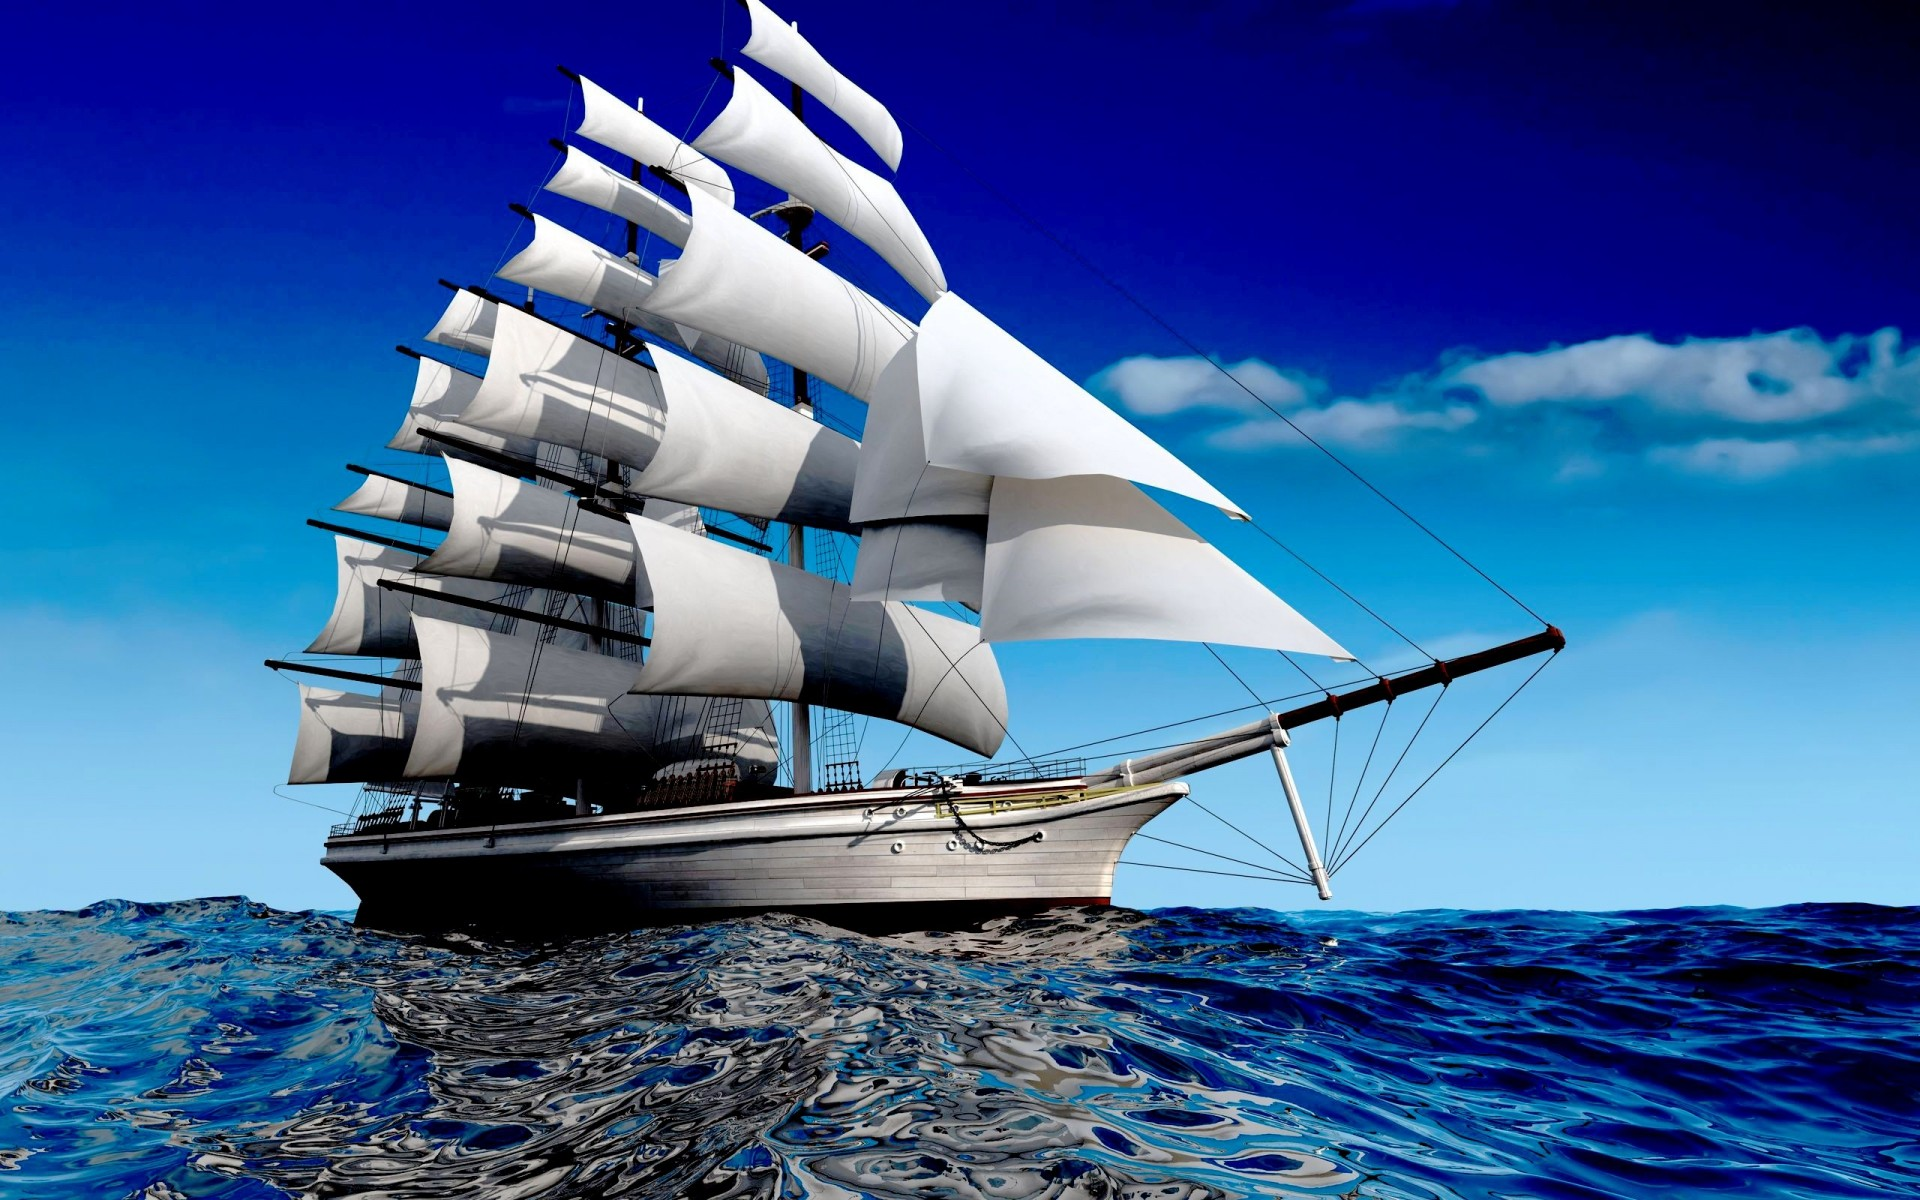 1920x1200 Fantasy Sailing Boat HD Wallpapers in HD | HD Wallpapers | Pinterest | Sailing  boat and Hd wallpaper